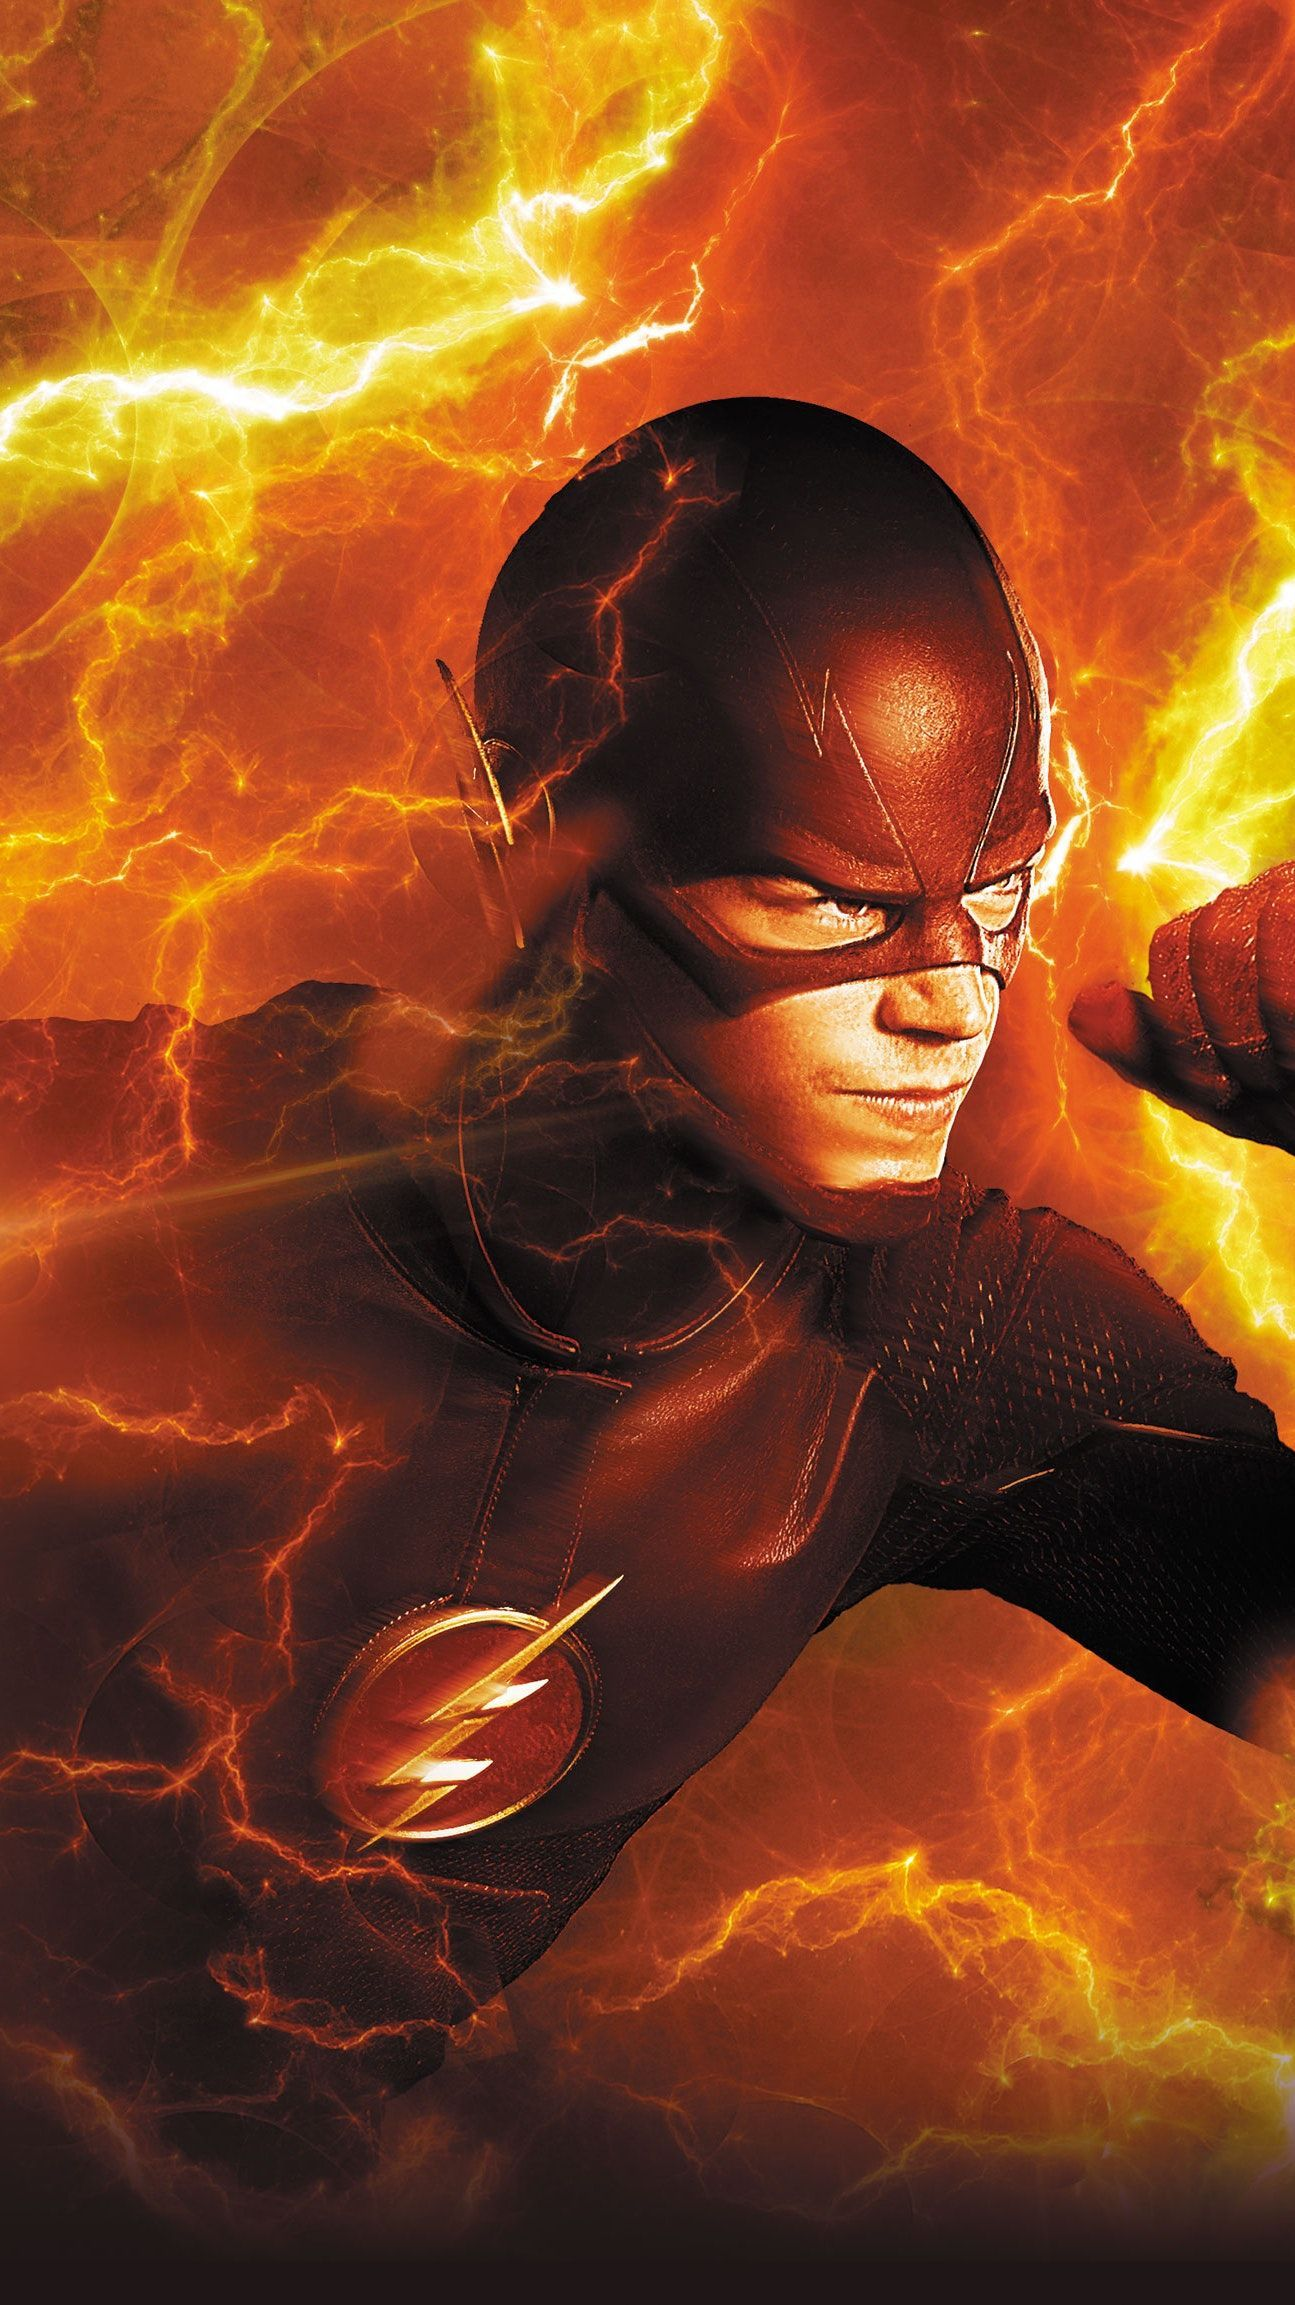 1295x2305 The Flash Phone Wallpaper | Movie wallpapers, Wallpaper and TVs